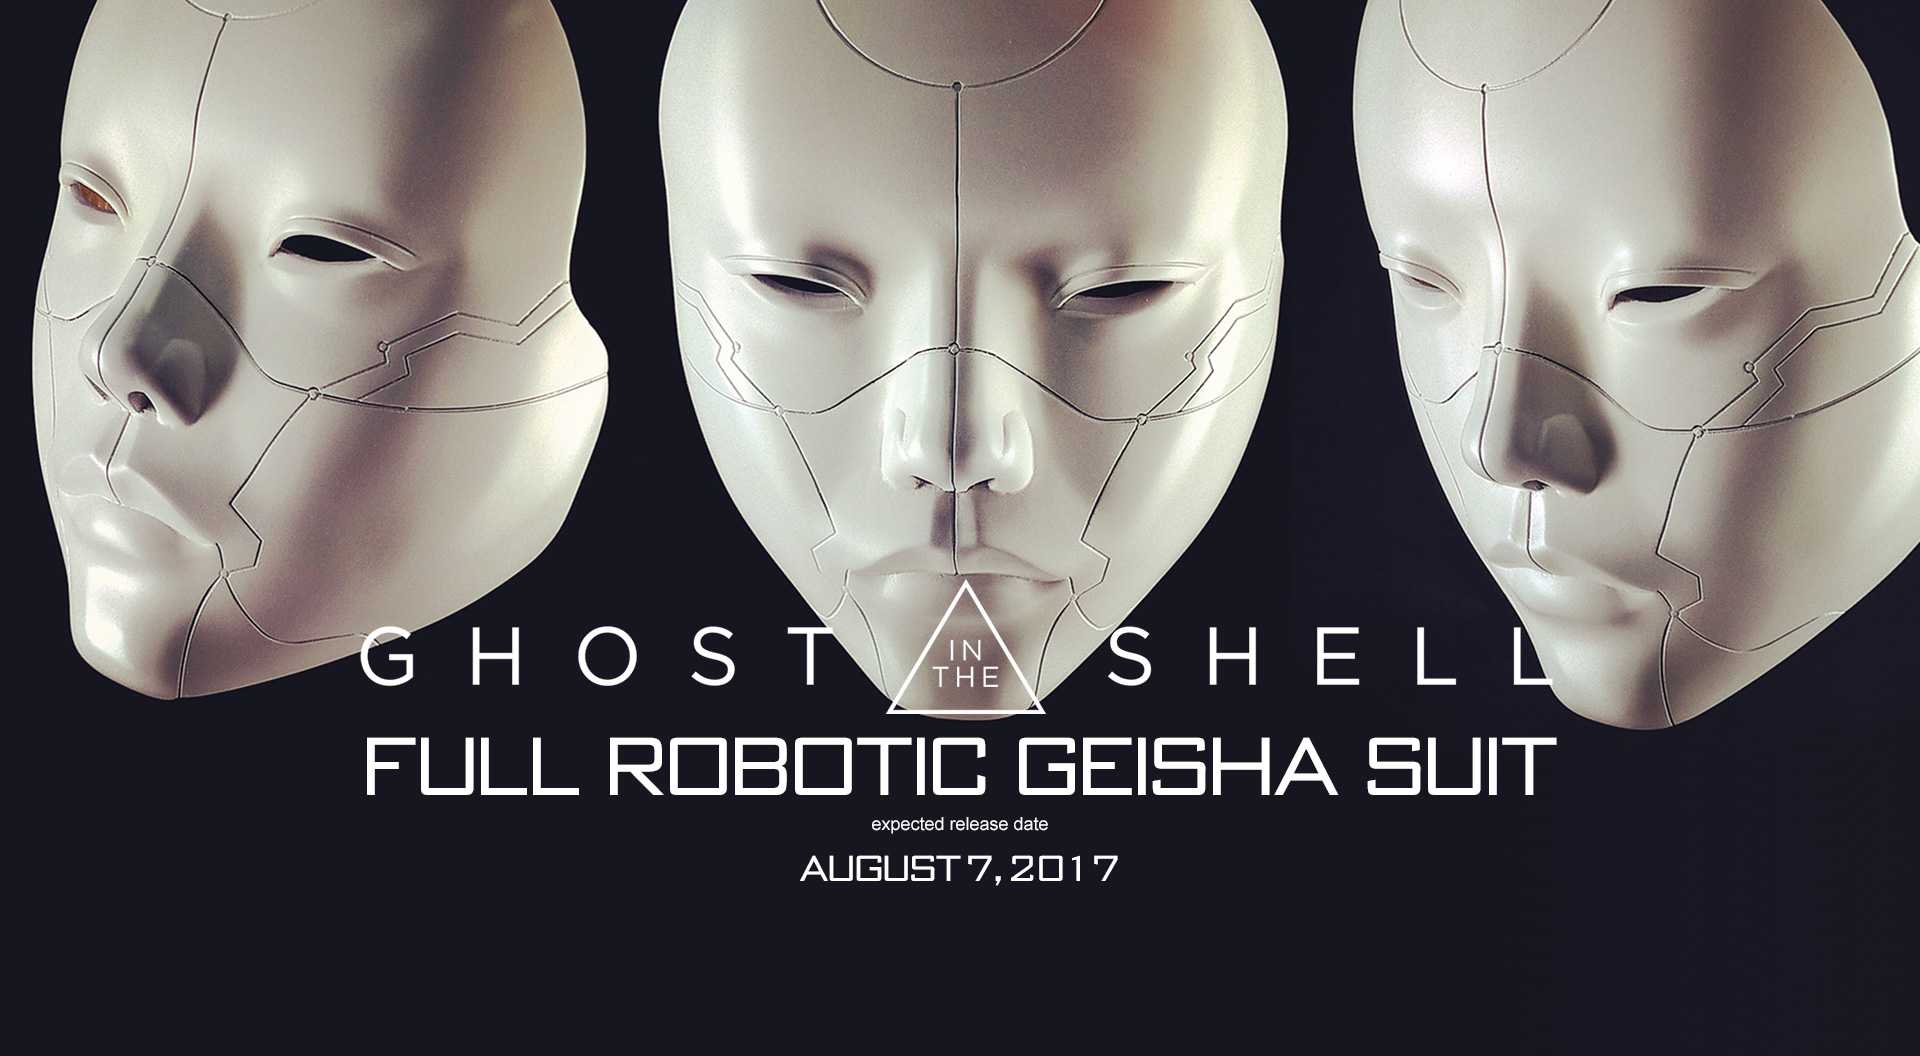 release_wearable_geisha_suit_ghost_in_the_shell_2017_bg2